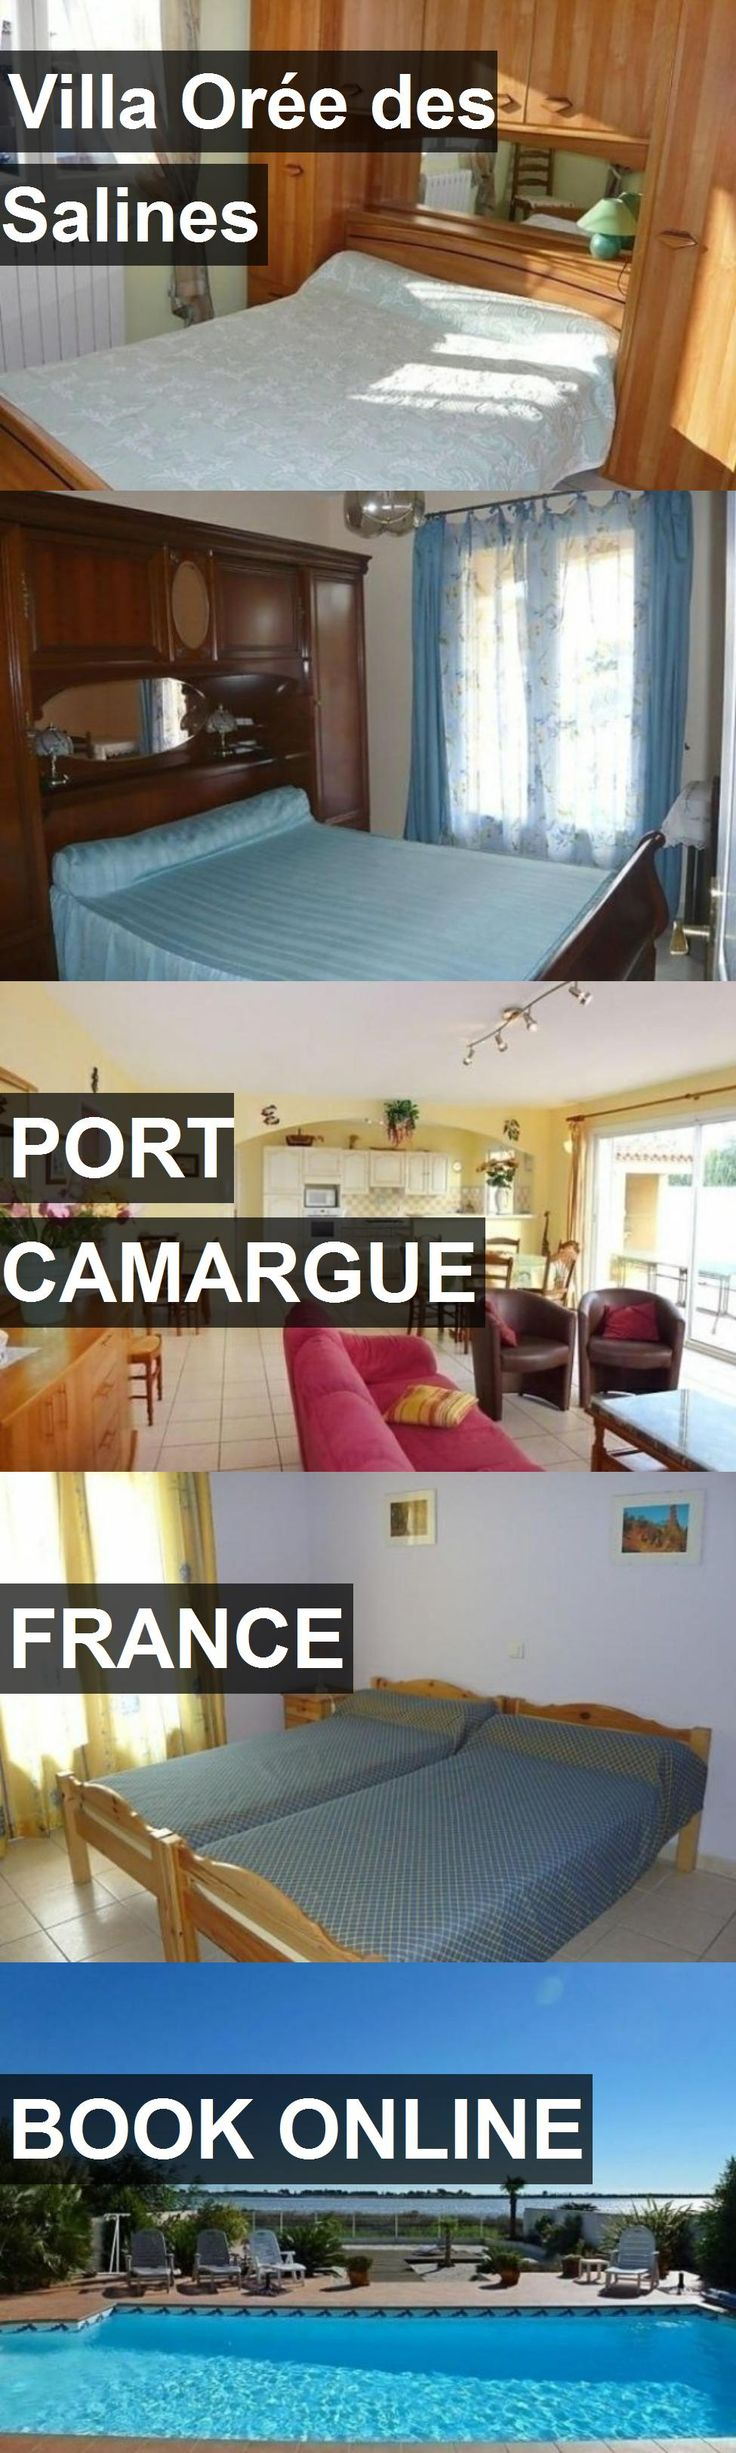 Hotel Villa Orée des Salines in Port Camargue, France. For more information, photos, reviews and best prices please follow the link. #France #PortCamargue #travel #vacation #hotel